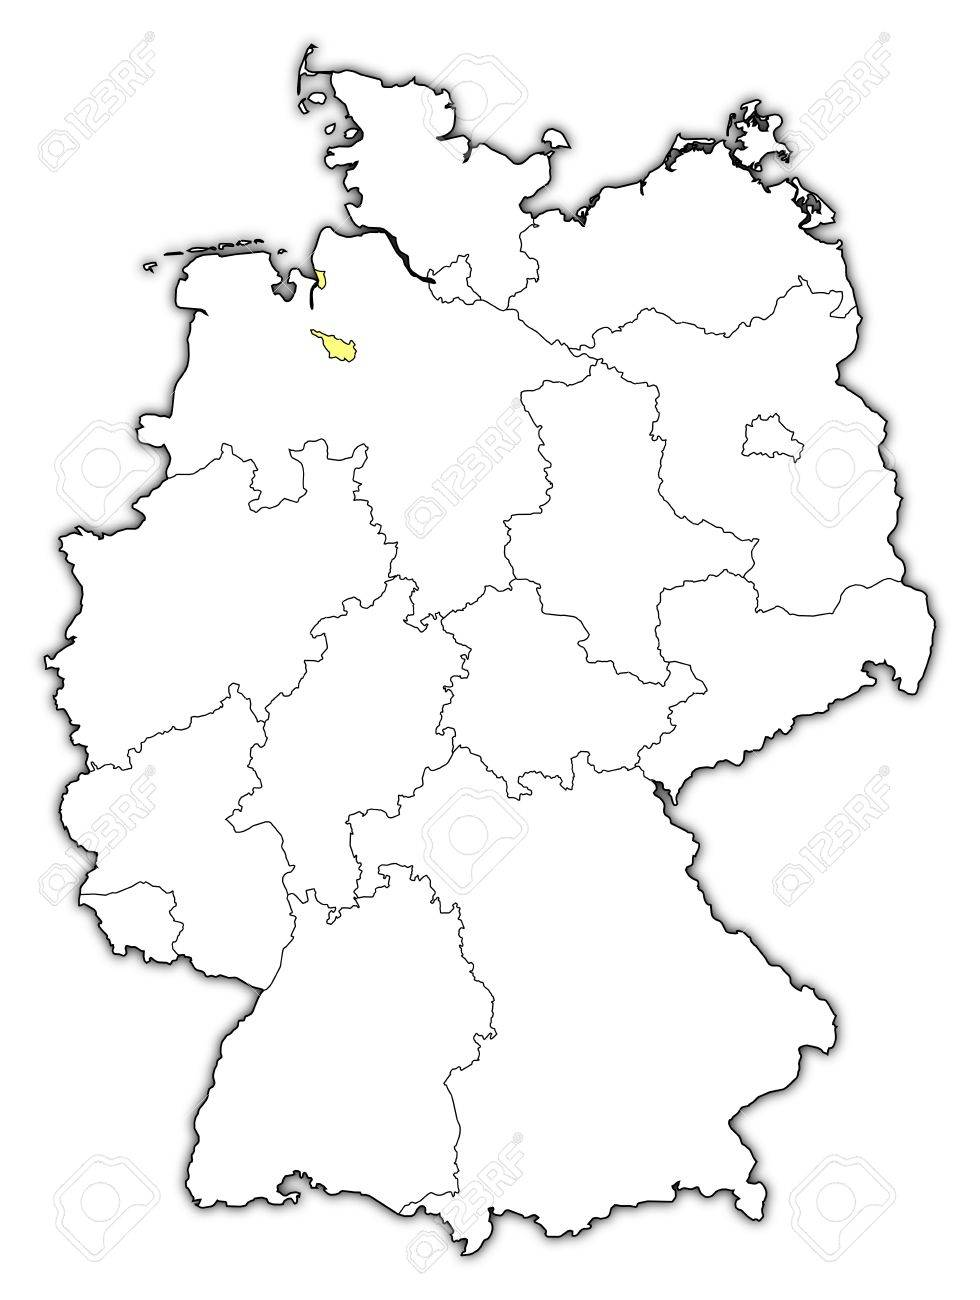 Germany Printable Blank Map Berlin Europe Royalty Free Outline - Outline map of germany with states